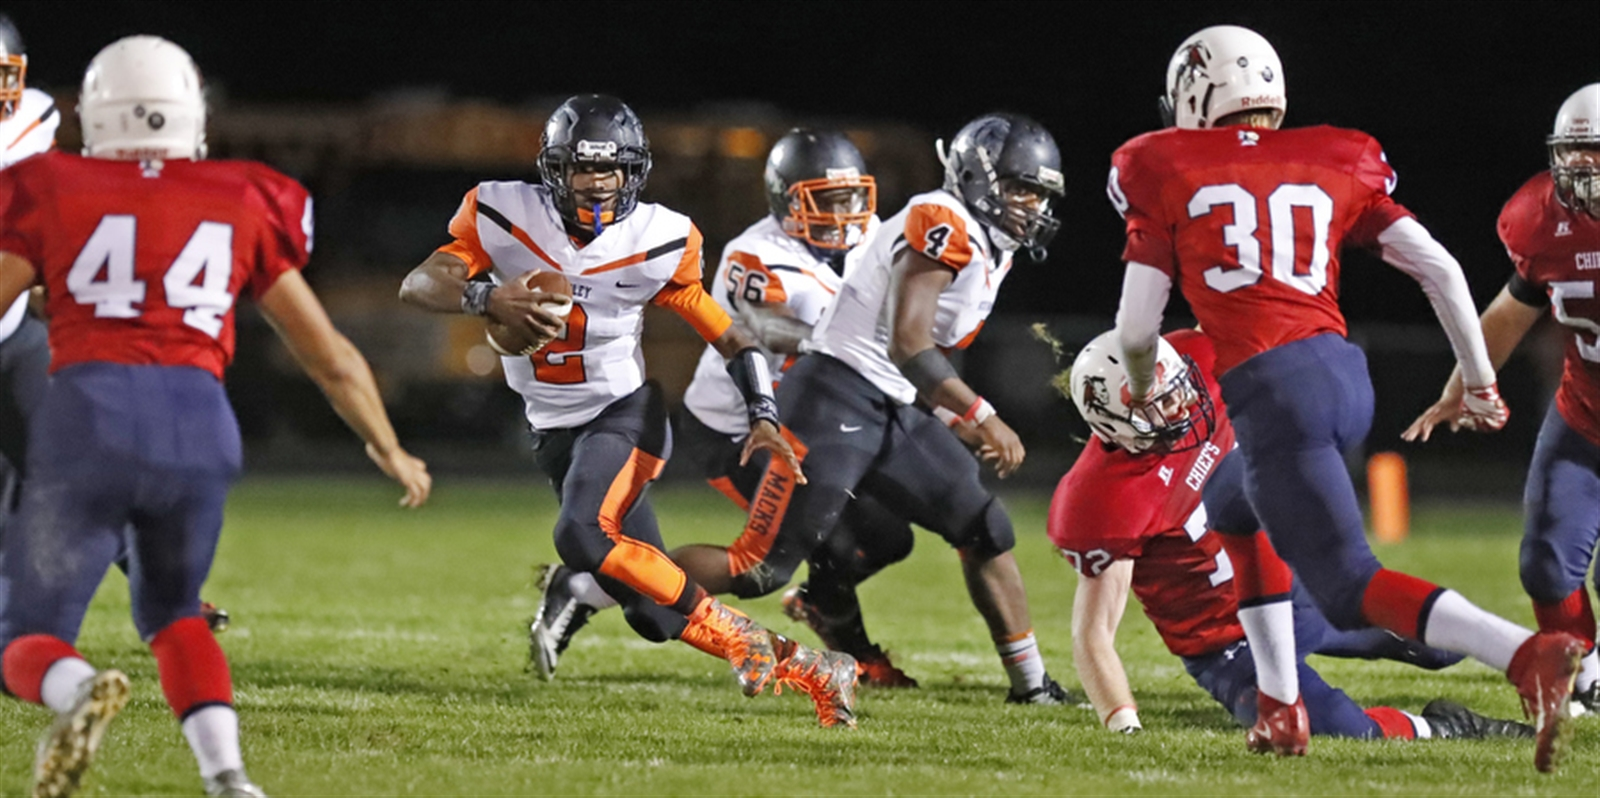 Mckinley's Taelon Hollamon runs against Iroquois during its 20-15 win over the Chiefs on Sept. 23. (Harry Scull Jr./Buffalo News)